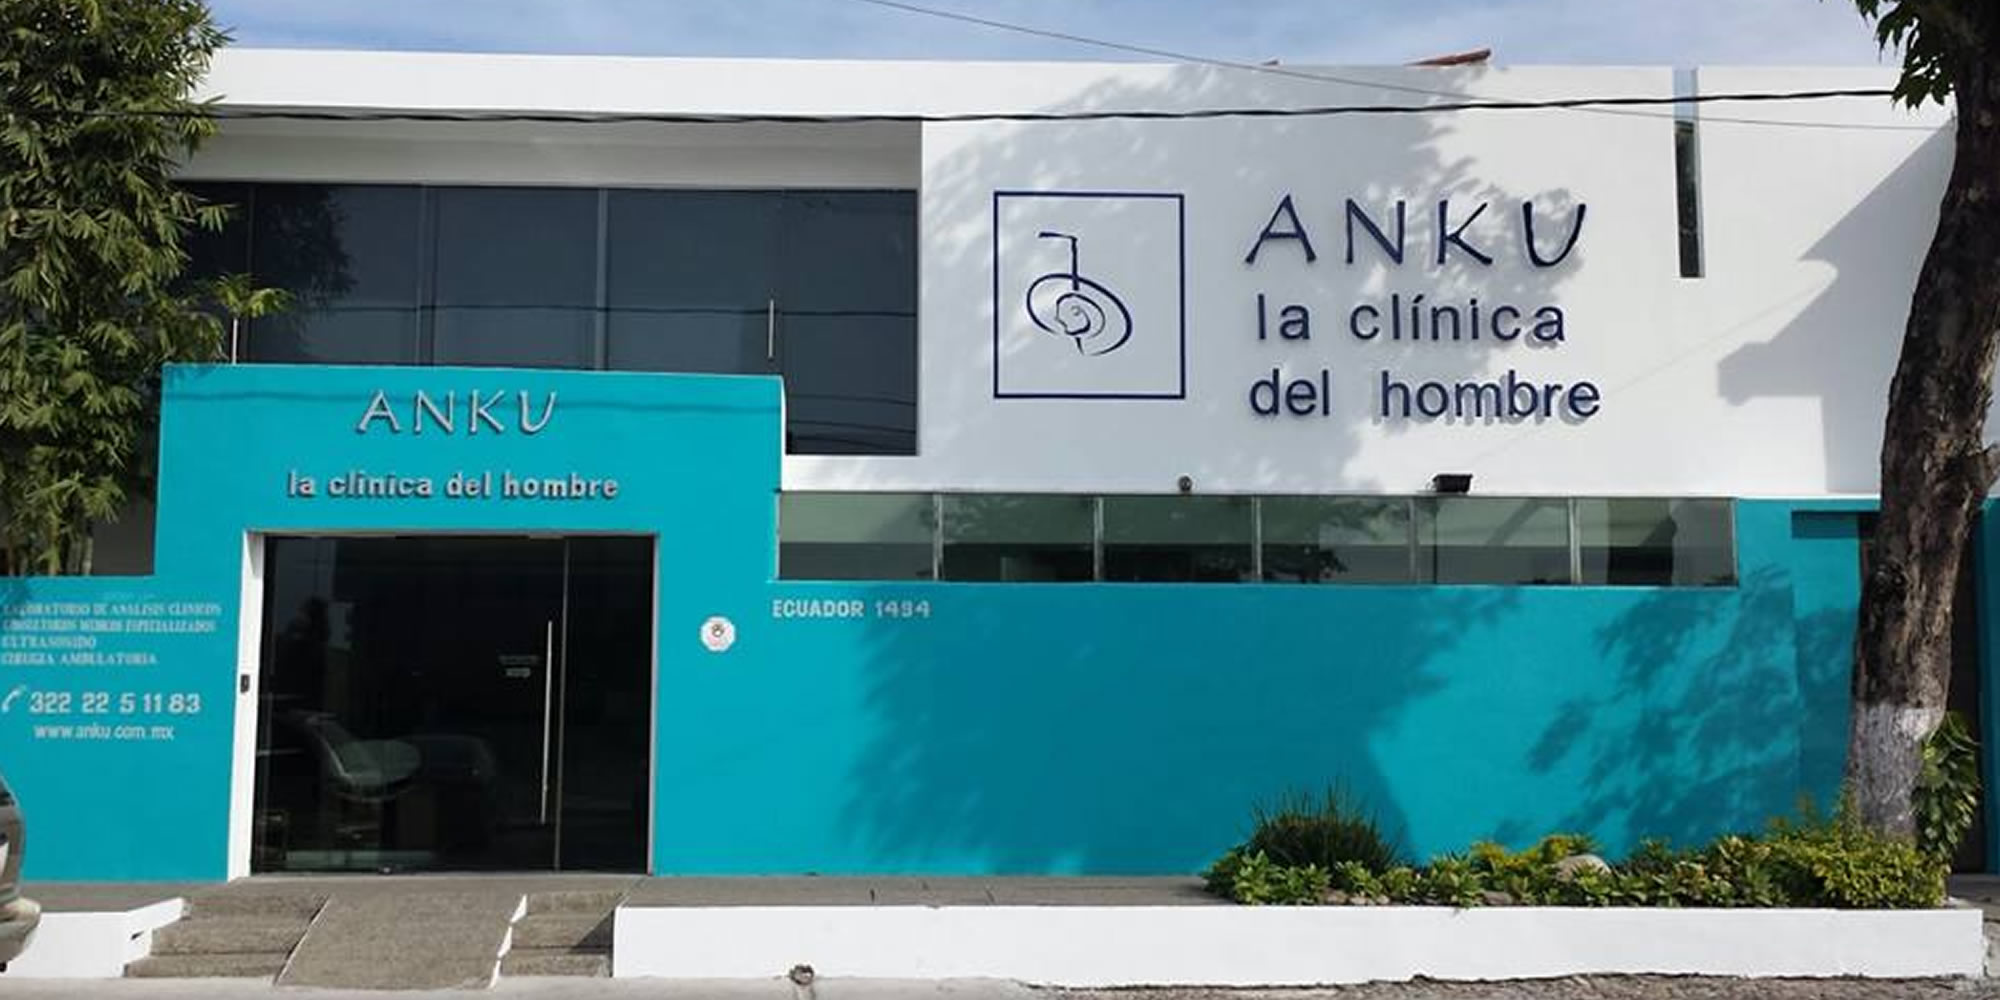 ANKU | Dr Pedro Lopez Cueto | Puerto Vallarta | Urologia | Cirugia Plastica | Urology Puerto Vallarta | Urologist Mexico | The Men Clinic | Urology | Nutrition | General Medicine | urinary incontinence